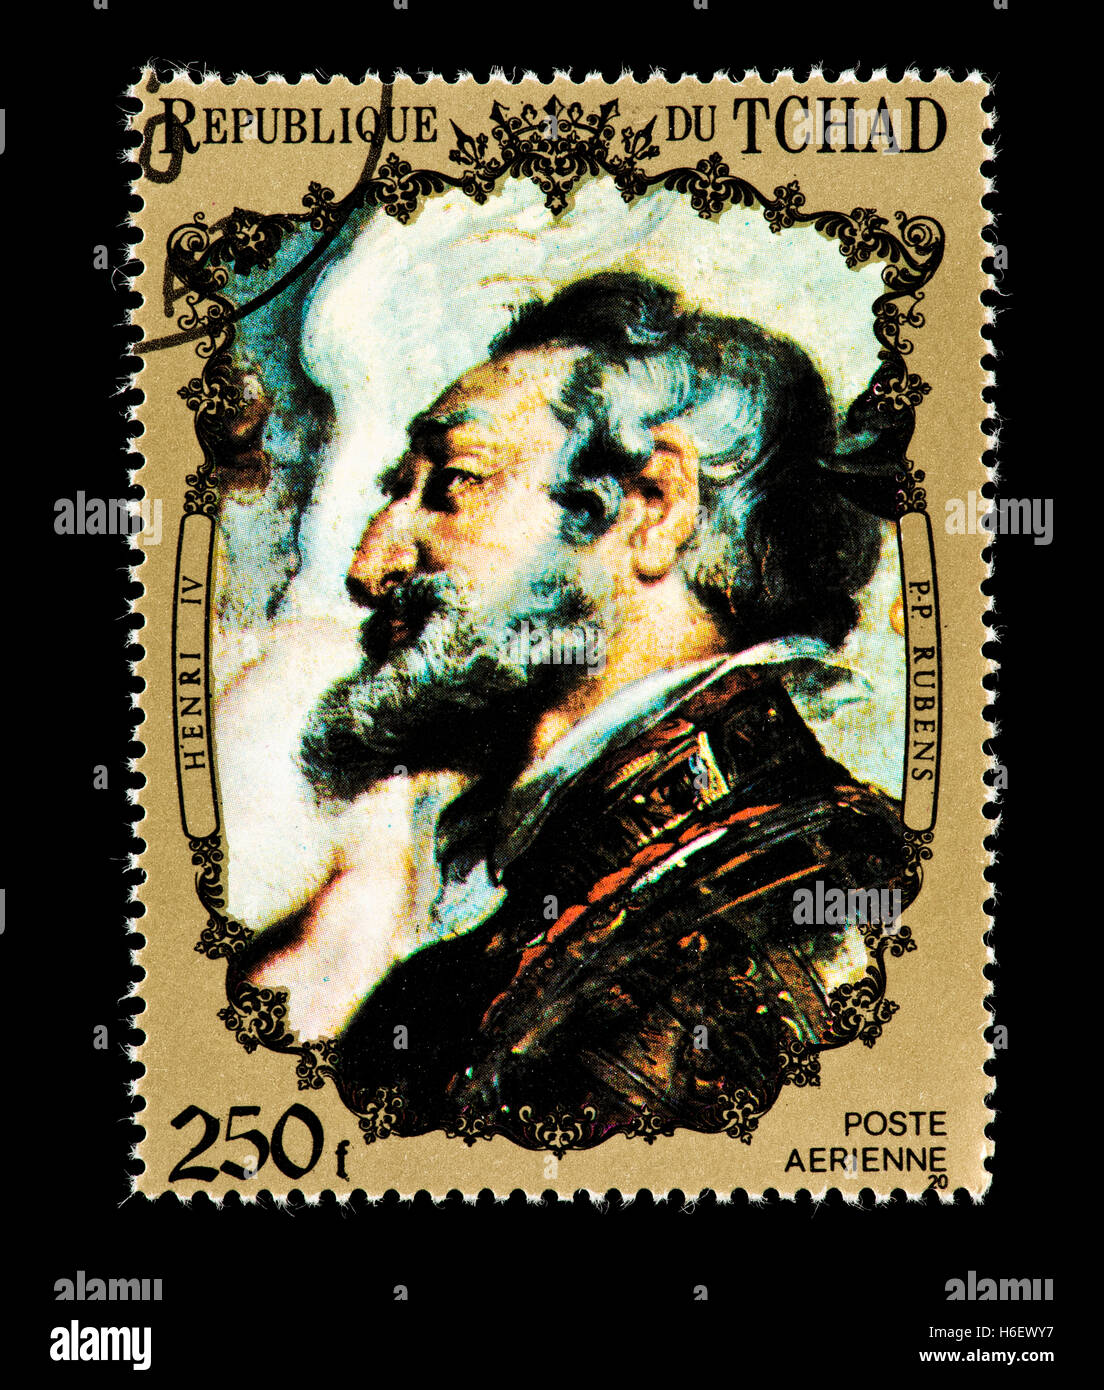 Postage stamp from Chad depicting the Rubens painting of Henry IV - Stock Image